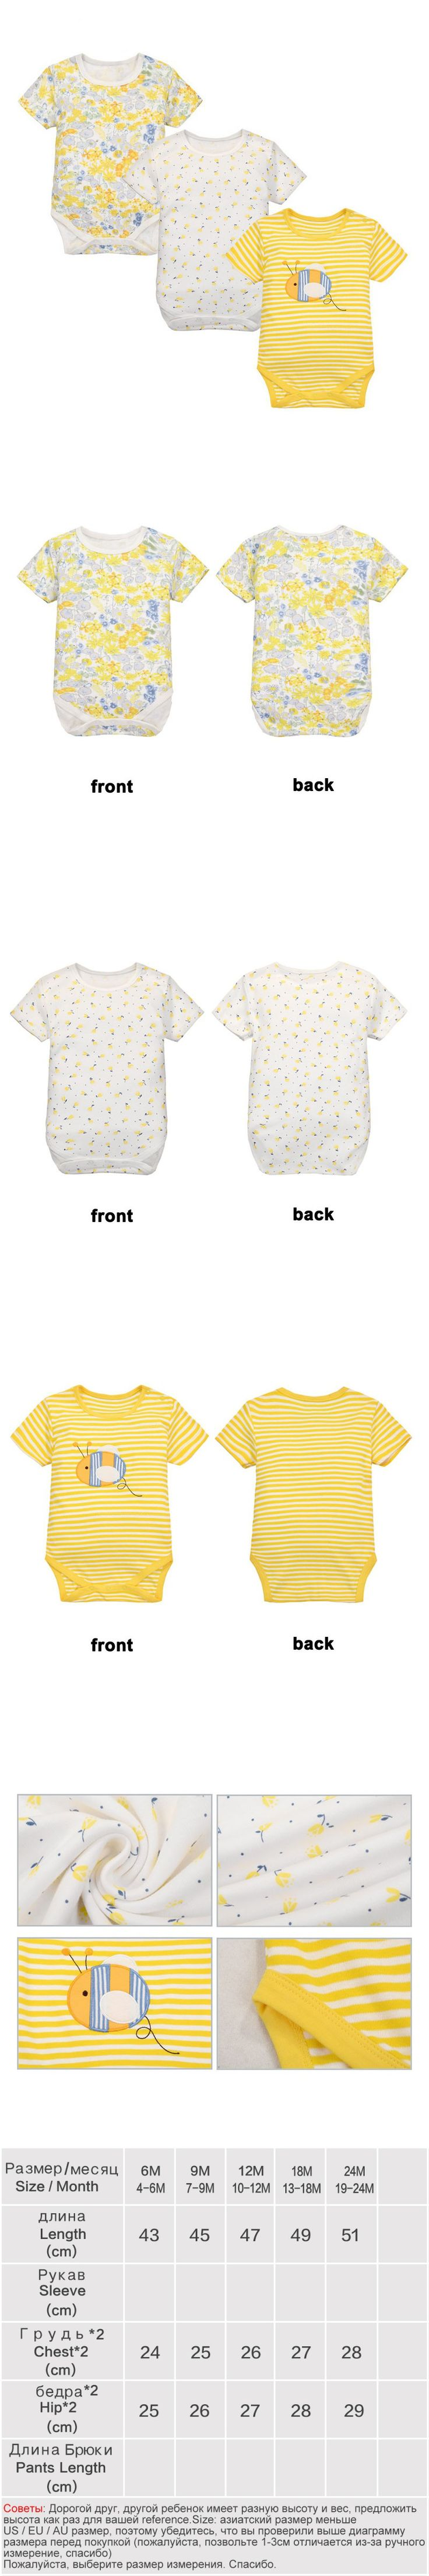 3Pcs/lot Bee Printed Cotton Baby Rompers Newborn Infant Boy Girl Short Sleeve Jumpsuit Kids Clothes Toddler Roupas De Bebe $19.36